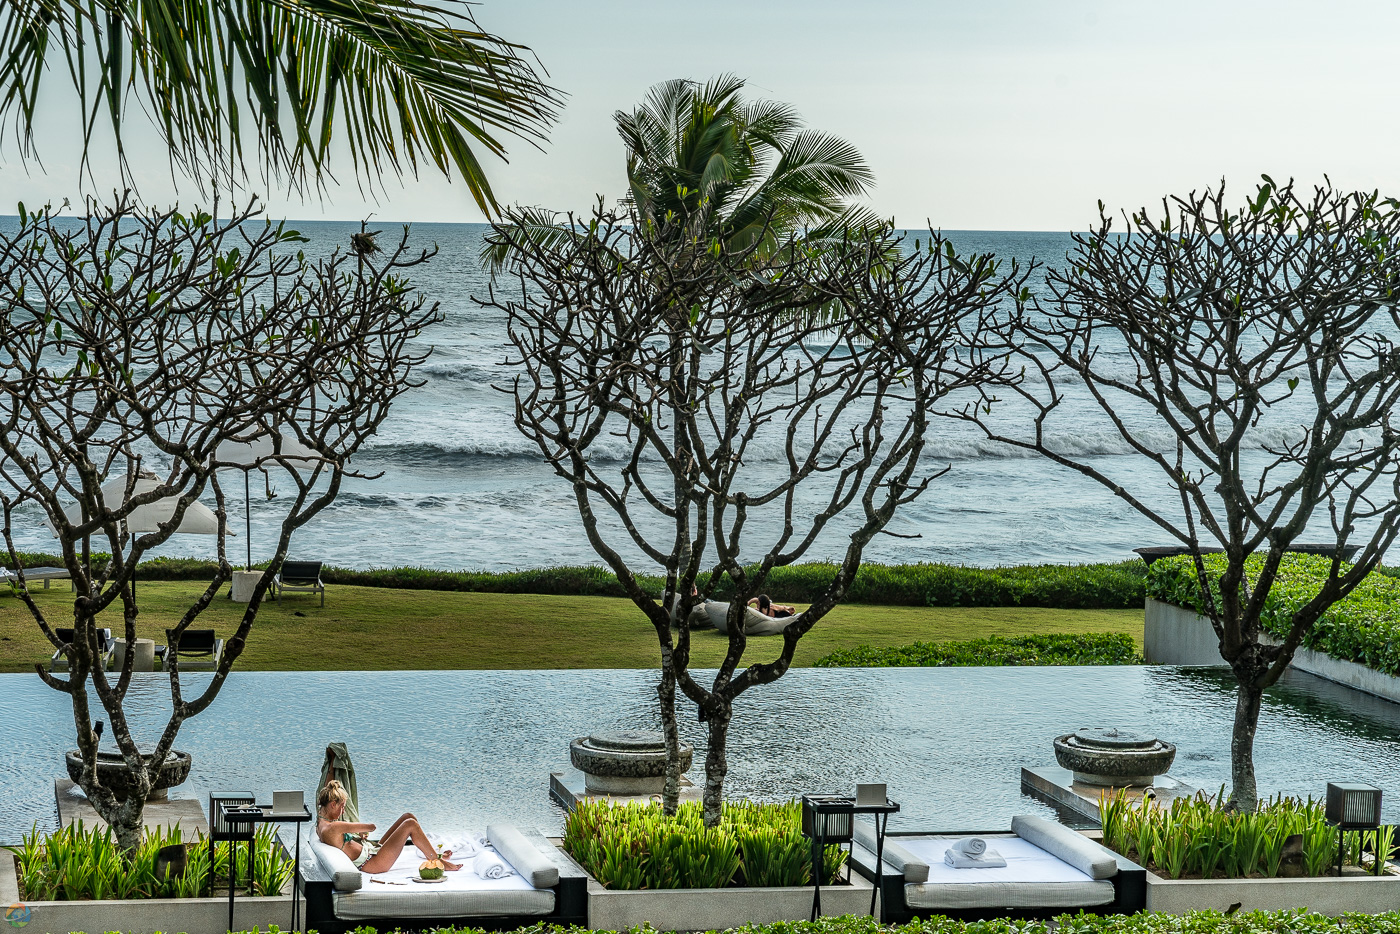 Whether poolside or beachside at SOORI Bali, the relaxation will overtake you.